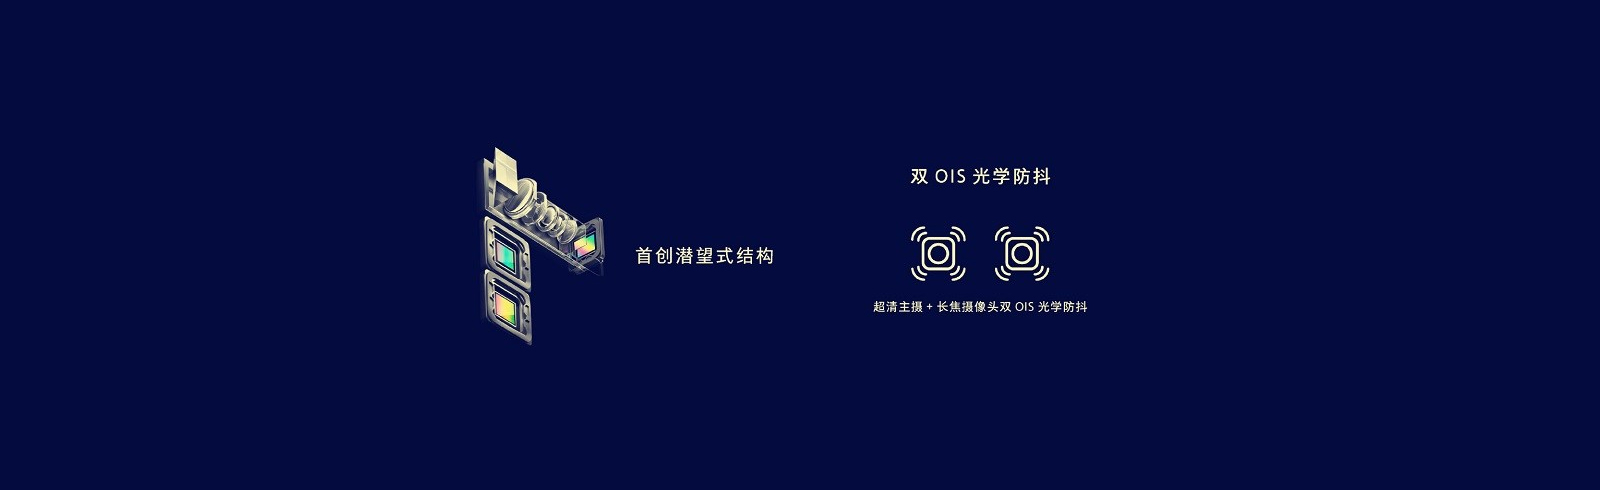 Oppo's 10x hybrid optical zoom technology is official, new optical fingerprint tech in tow